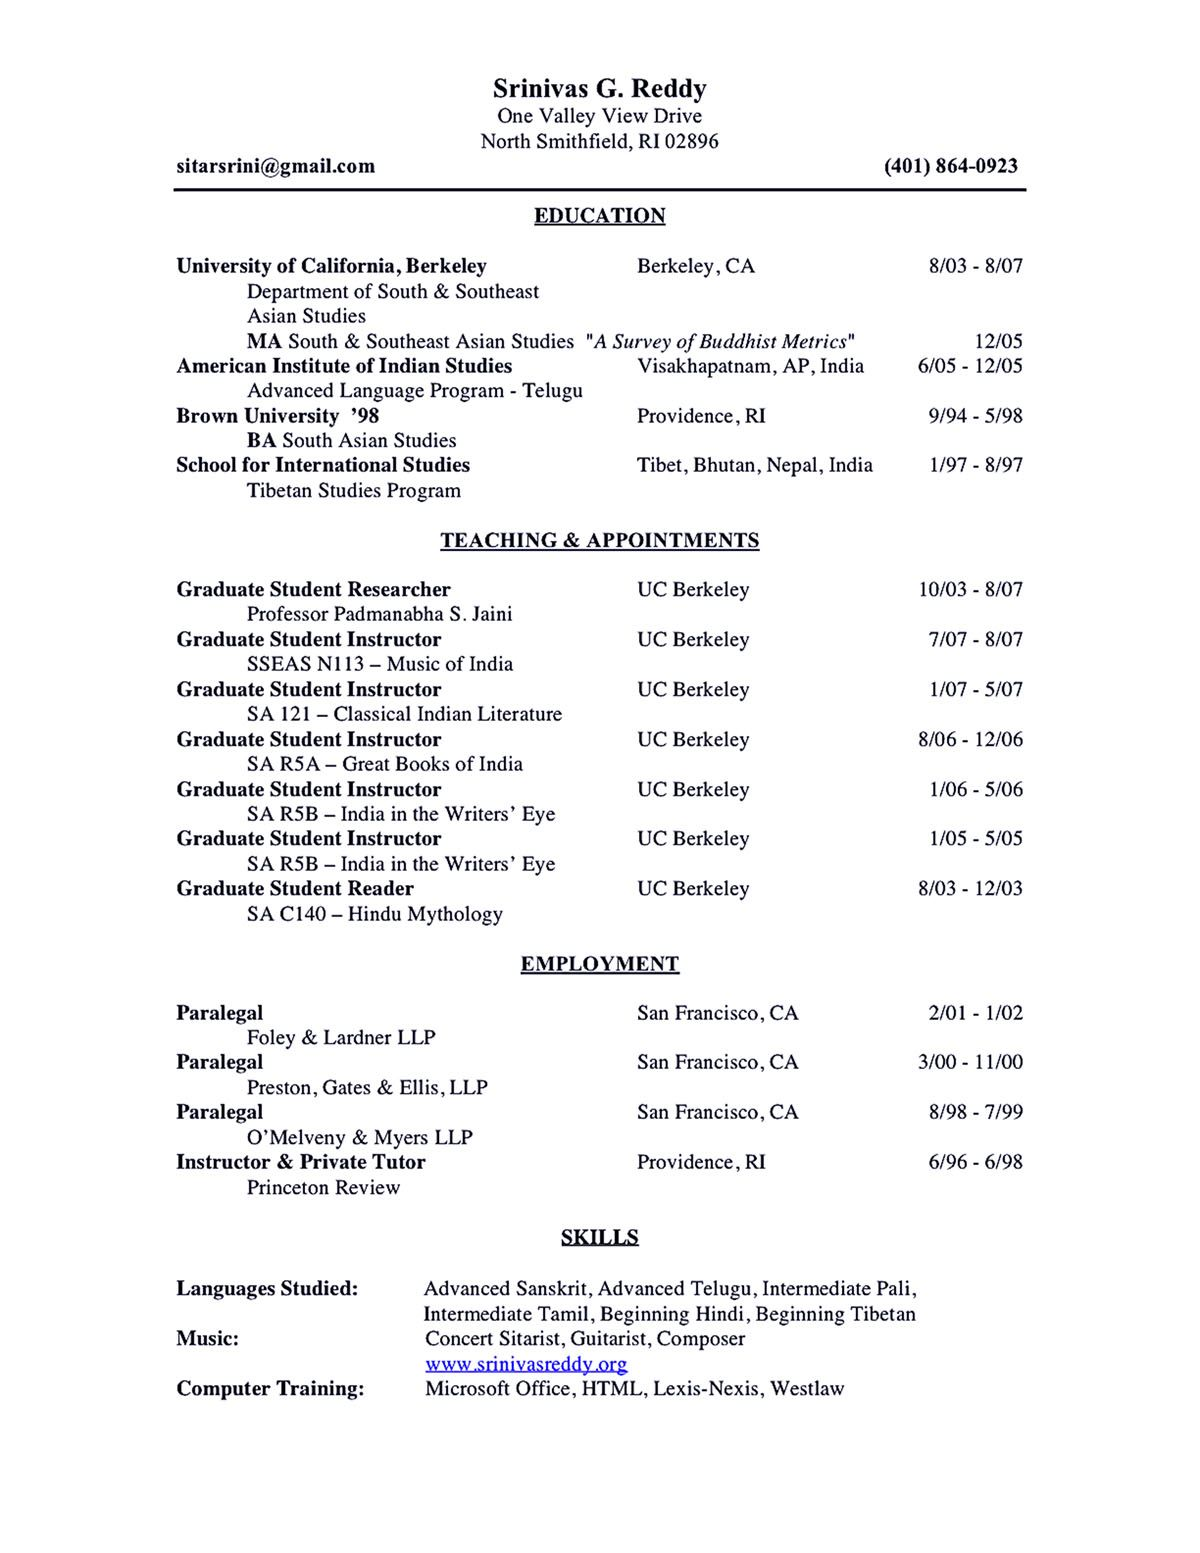 Academic Resume Sample Academic Resume Sample Shows You How To Make Academic Resume